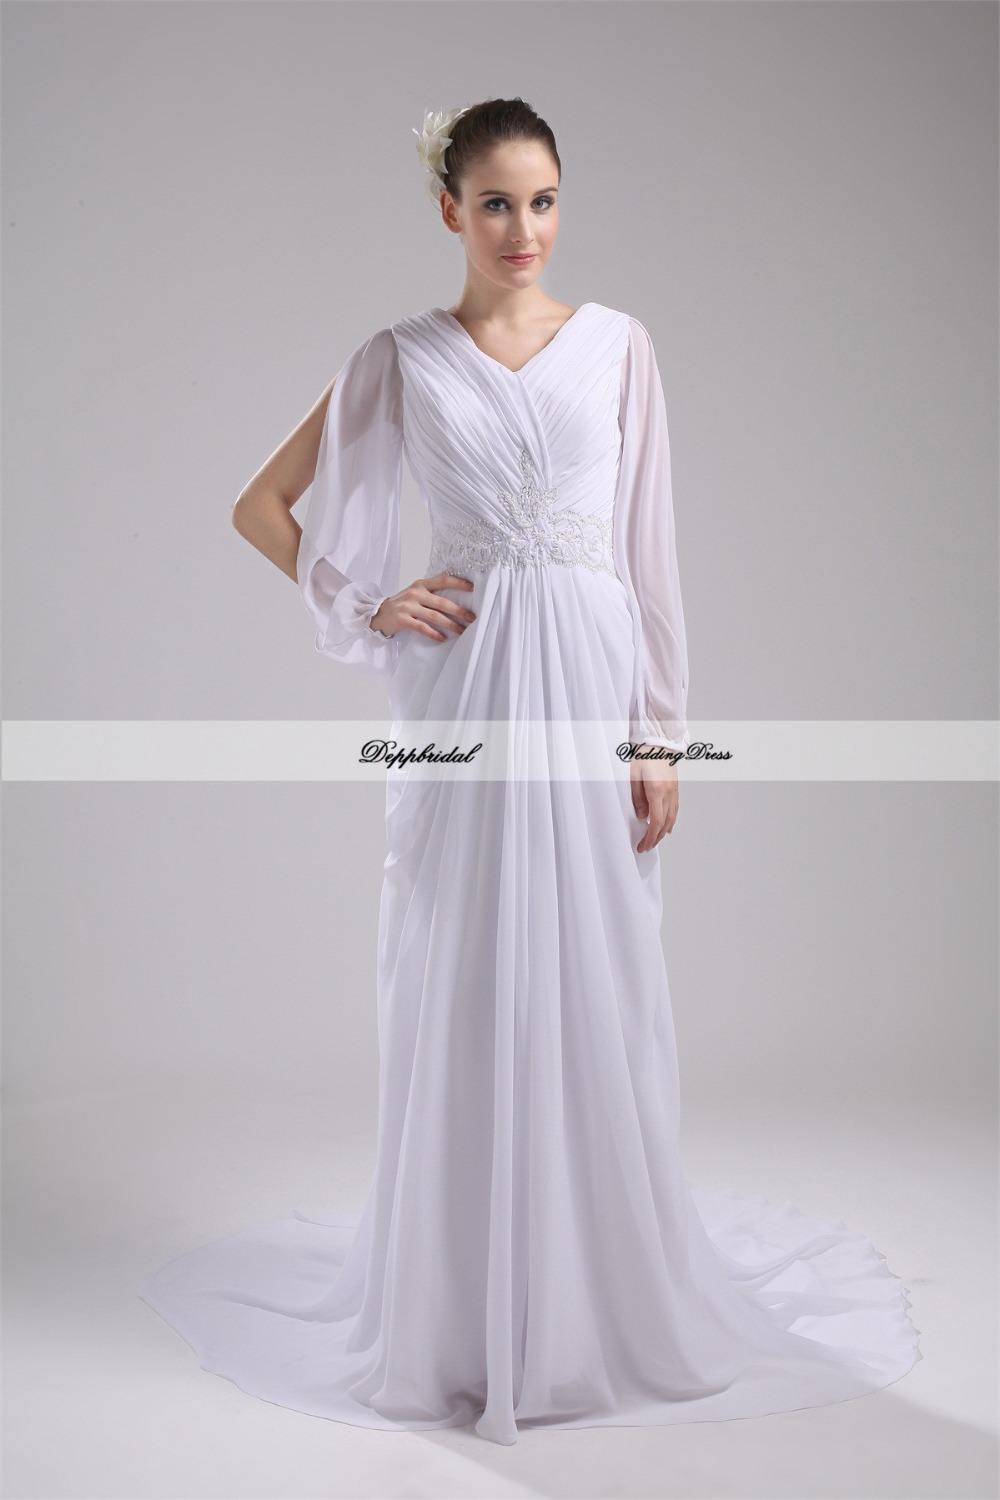 Wholesale wedding dress chiffon v neck a line long sleeve for Long sleeve chiffon wedding dress